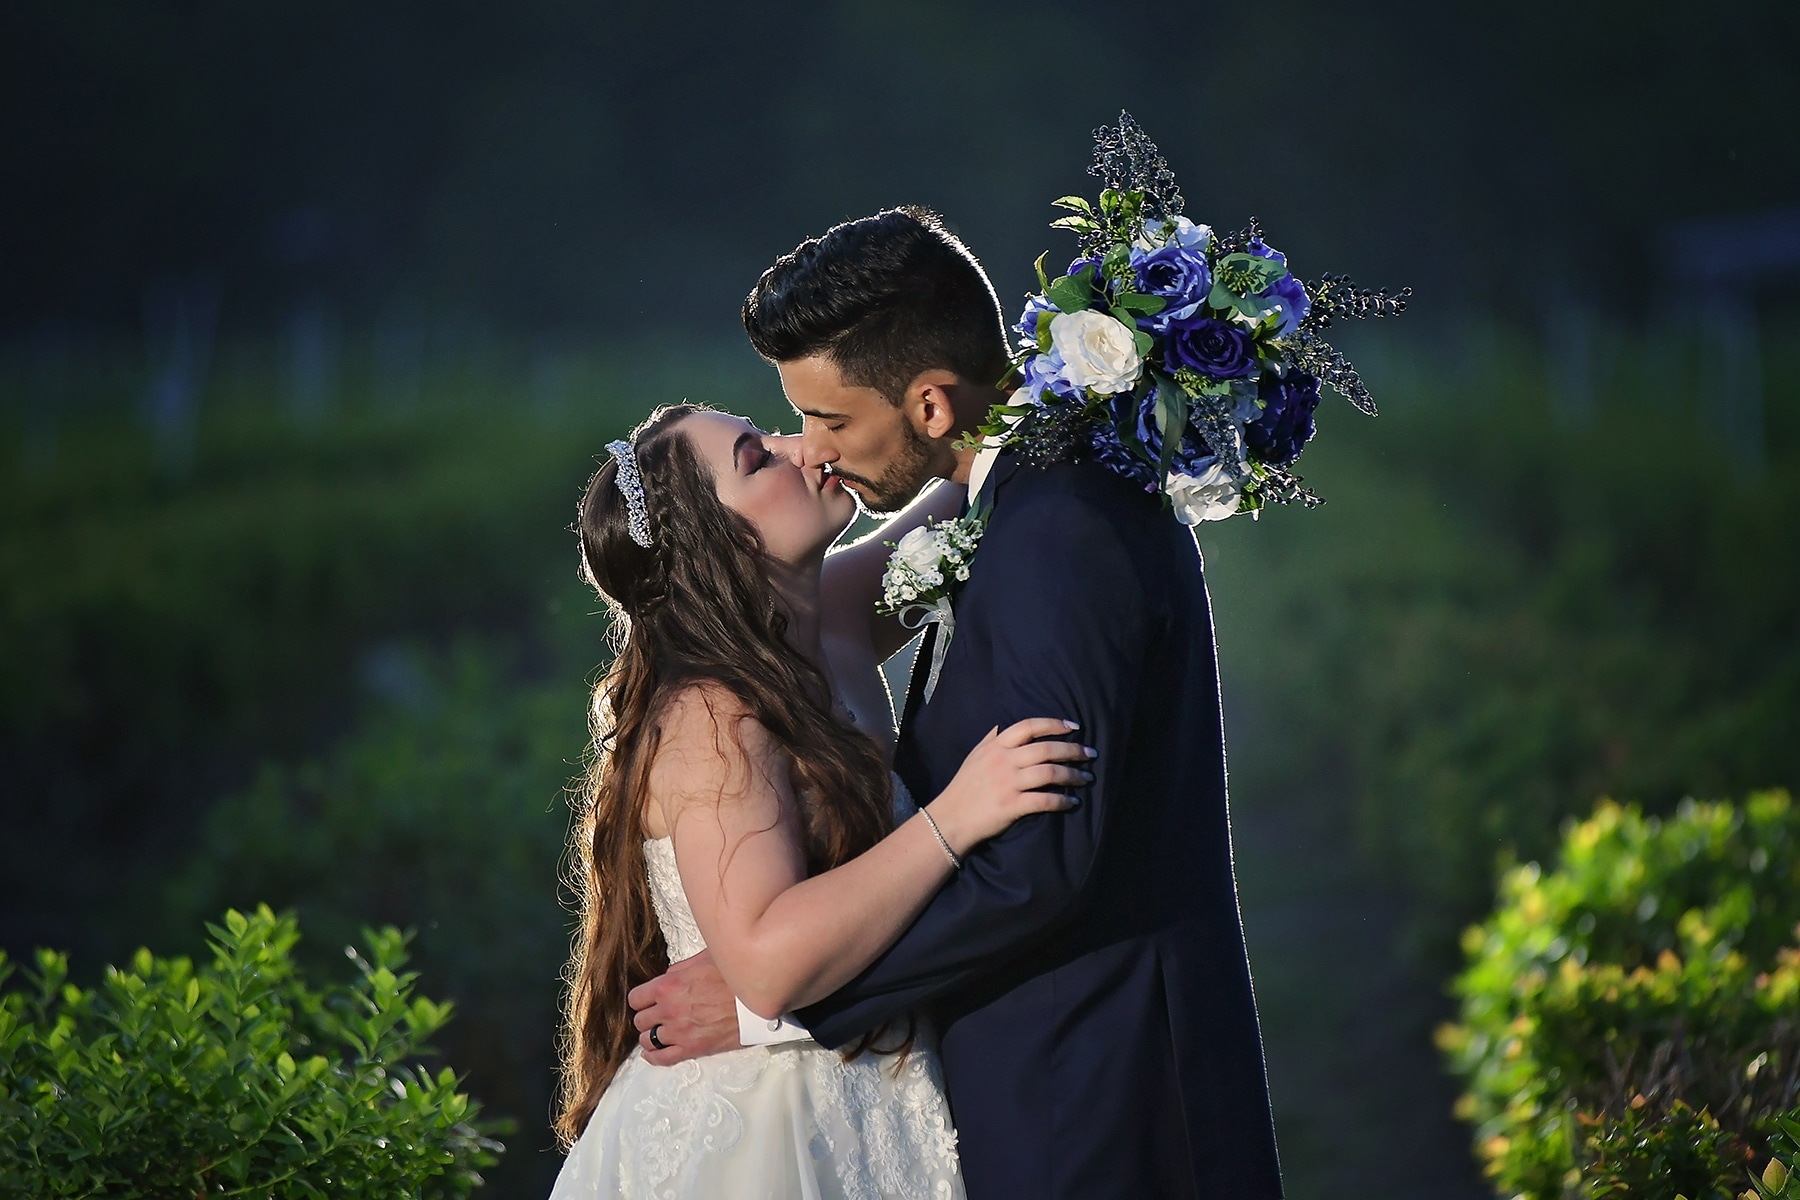 backlit photo bride and groom kissing holding wedding bouquet of blue and purple flowers